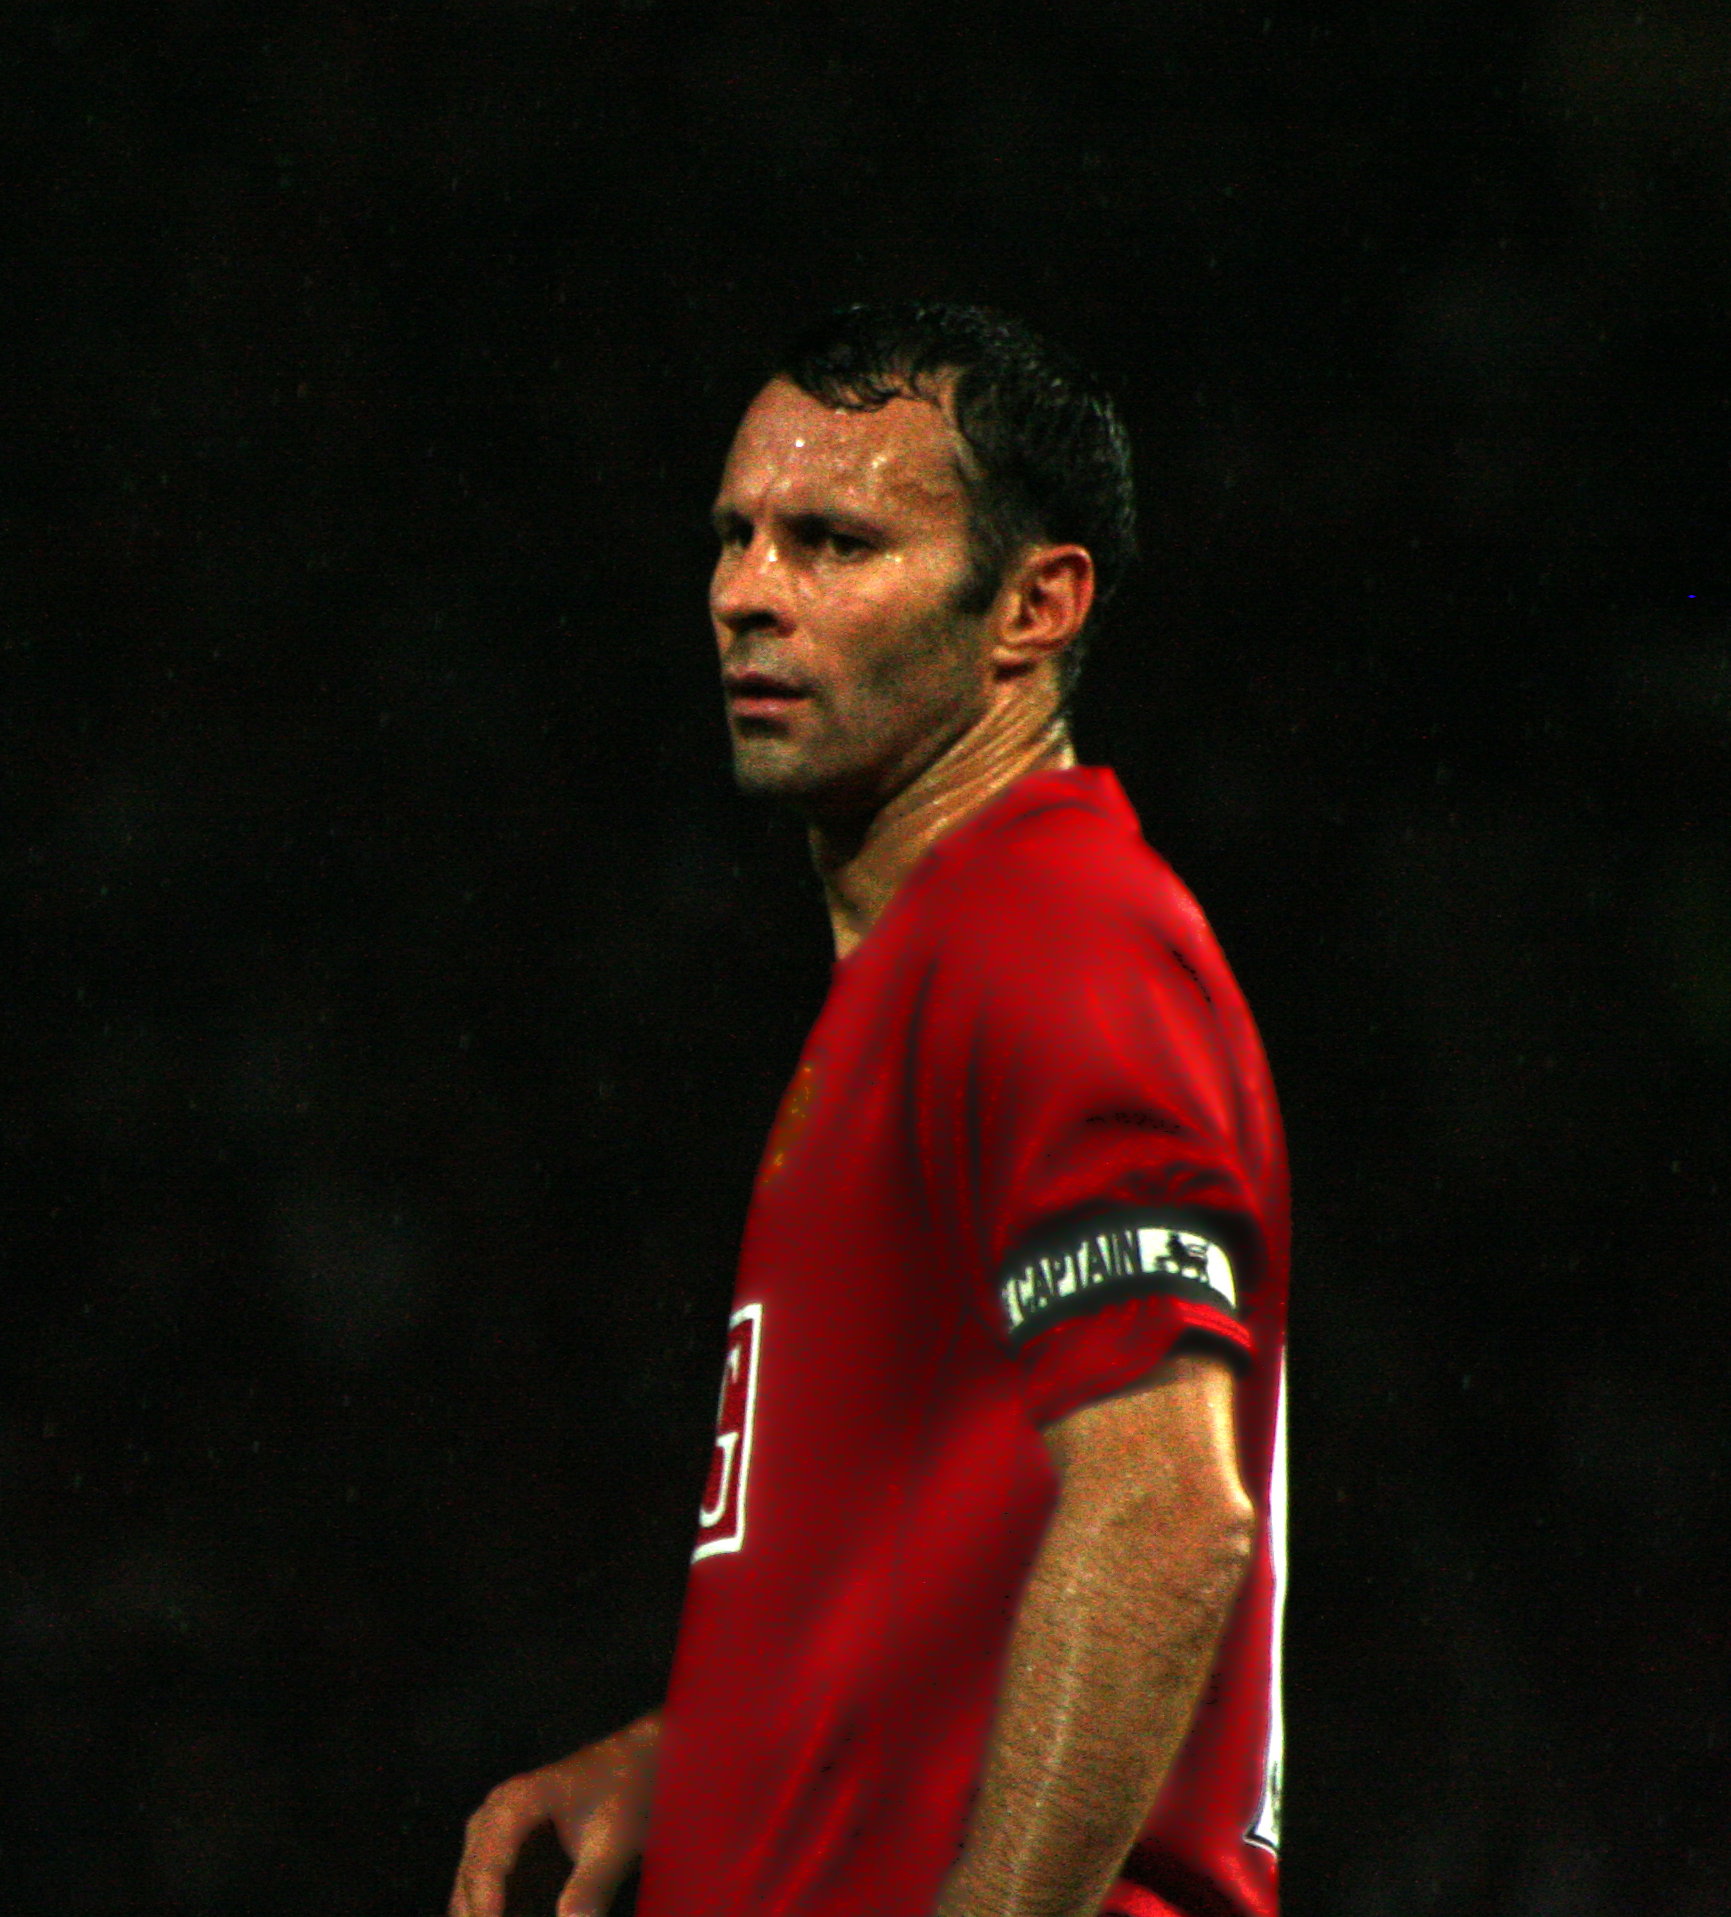 Ryan Giggs scored an enormous goal on a free kick on Saturday against Tottenham. The game was one of the most entertaining I have watched all year. But That is all I have for that story. (Courtesy James Adams flickr)